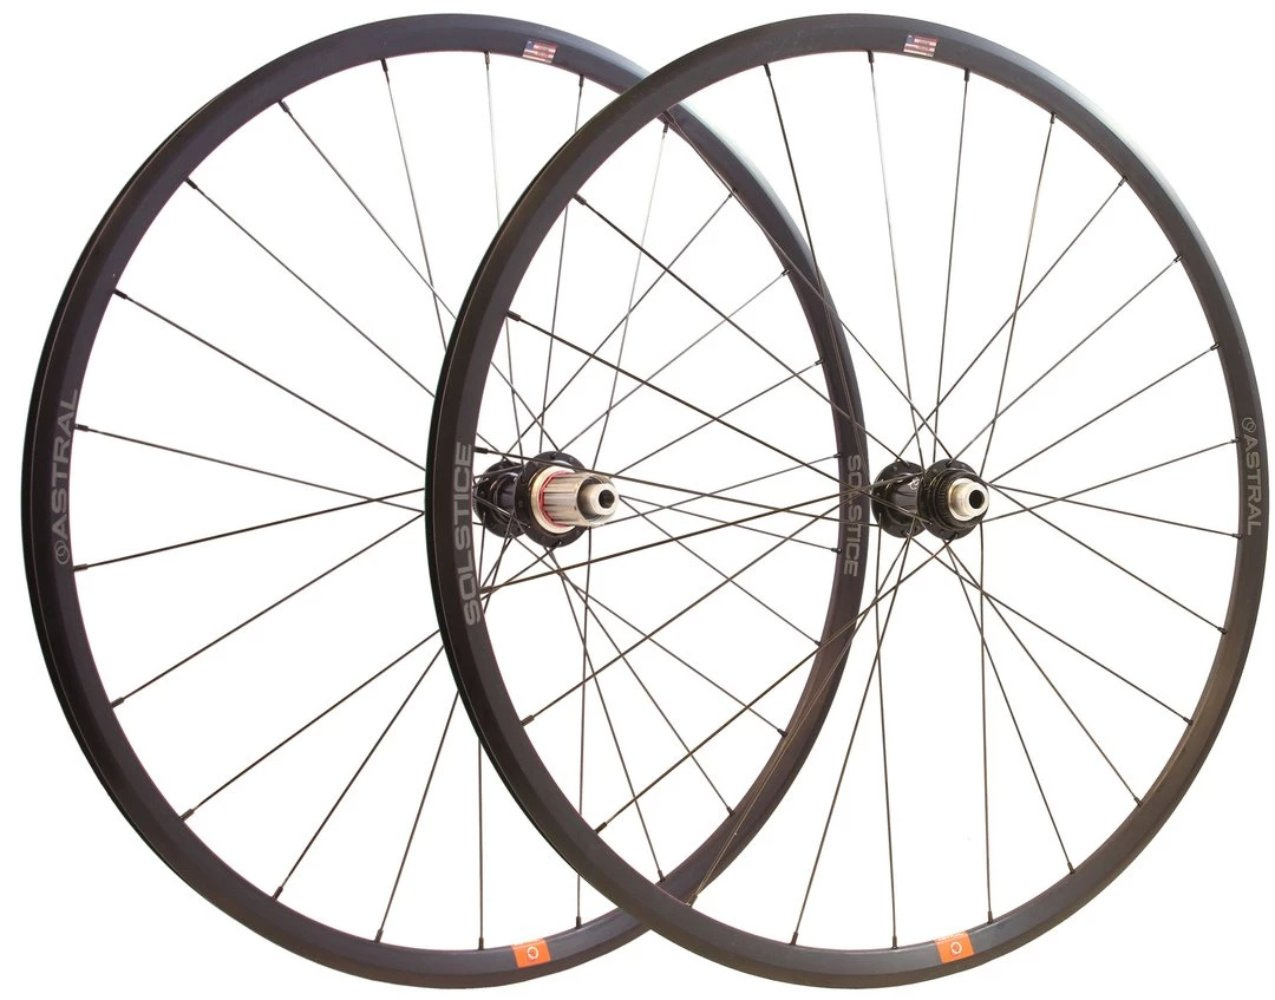 Astral Solstice / White Industries Road Wheelset (Disc or Rim Brake)